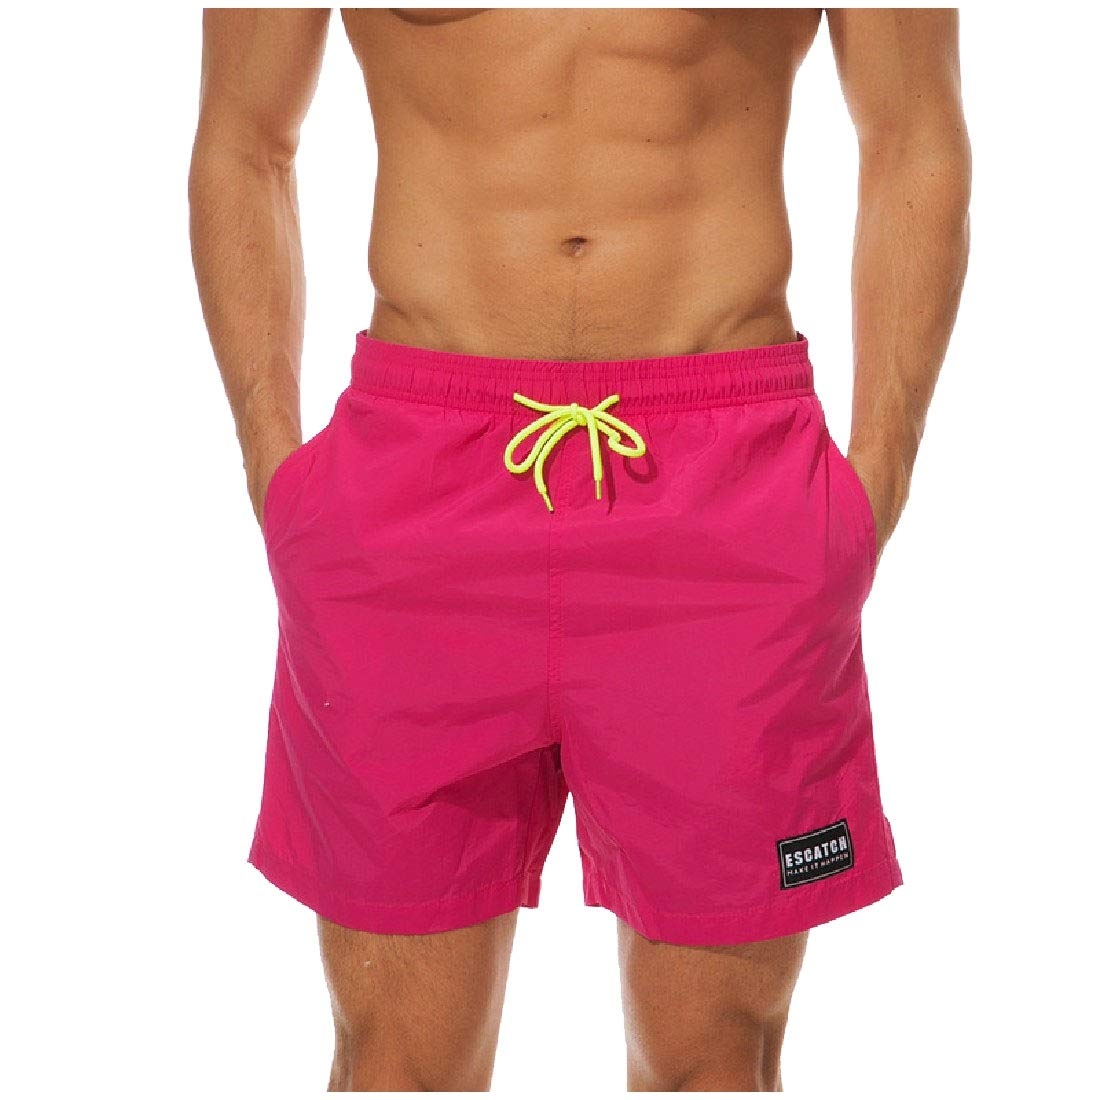 Abetteric Mens Waterproof Breathable Casual Active Drawstring Board Shorts